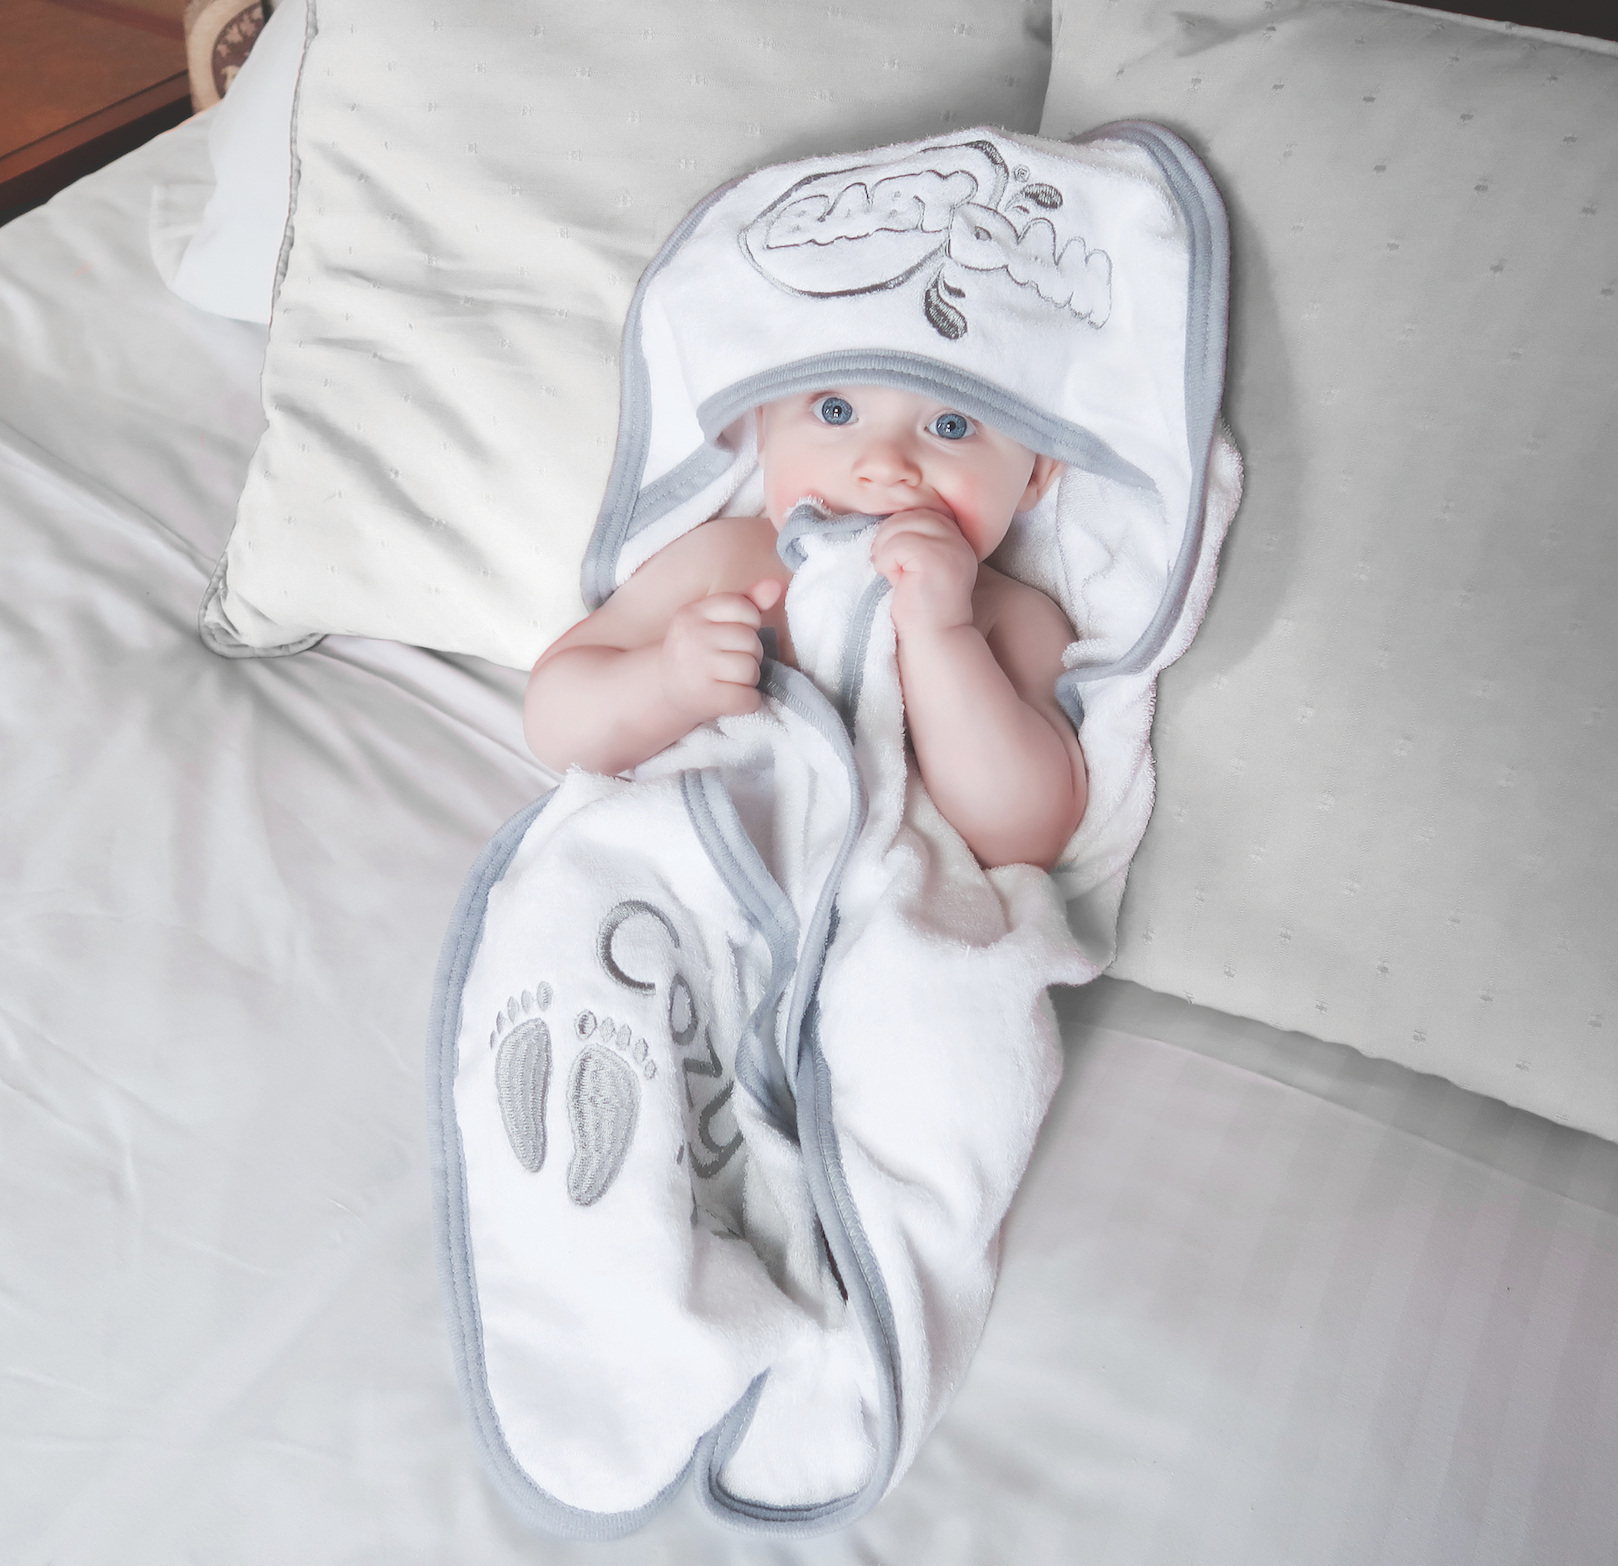 baby bath hooded towel